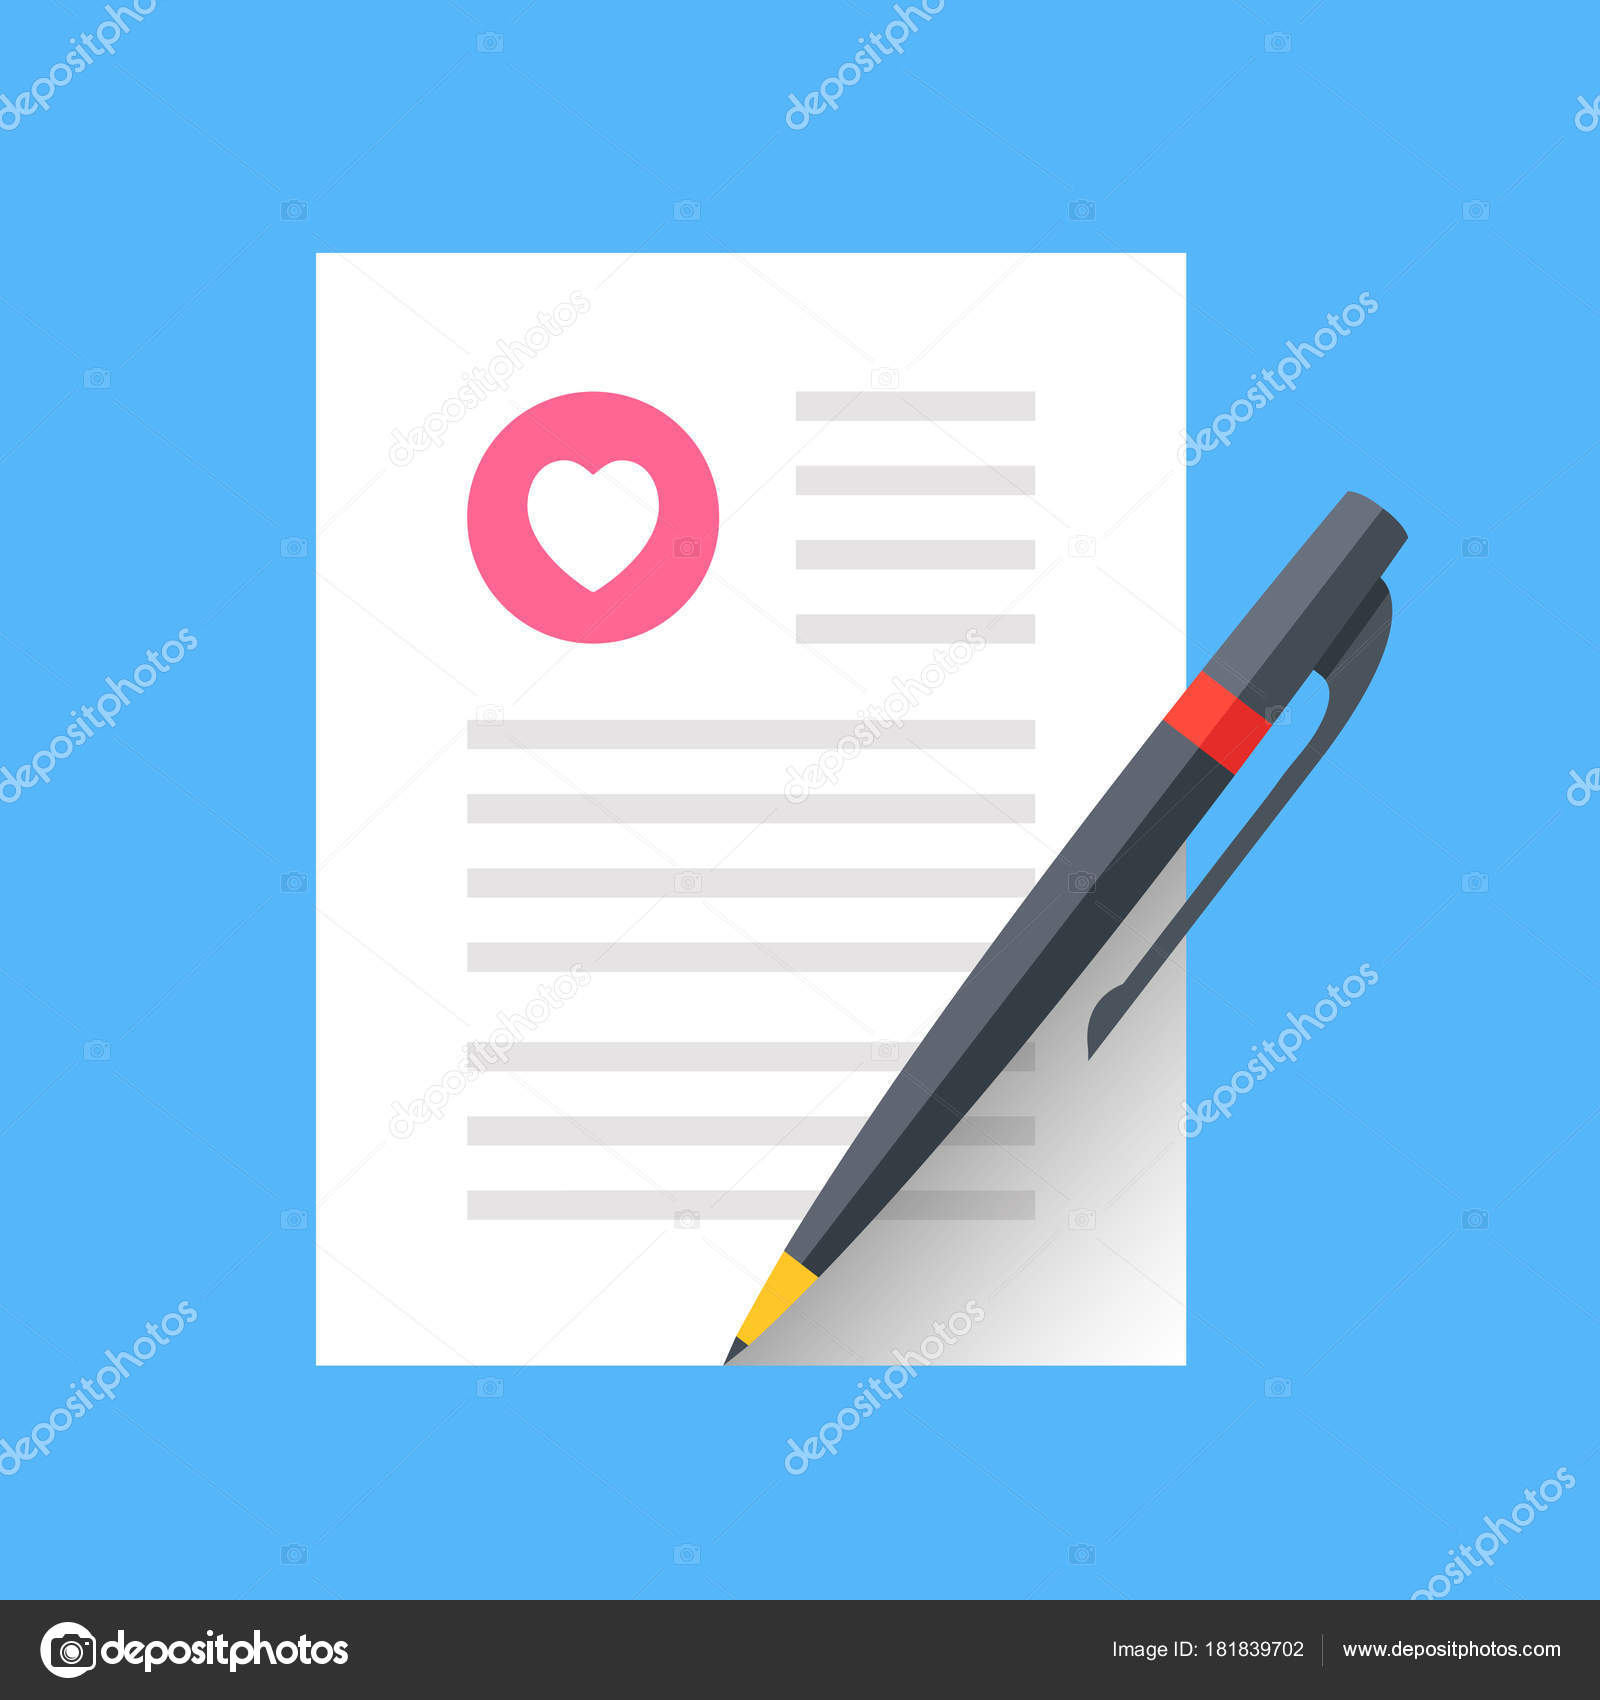 Love Letter Marriage Contract Wedding Invitation Sheet Paper Pen